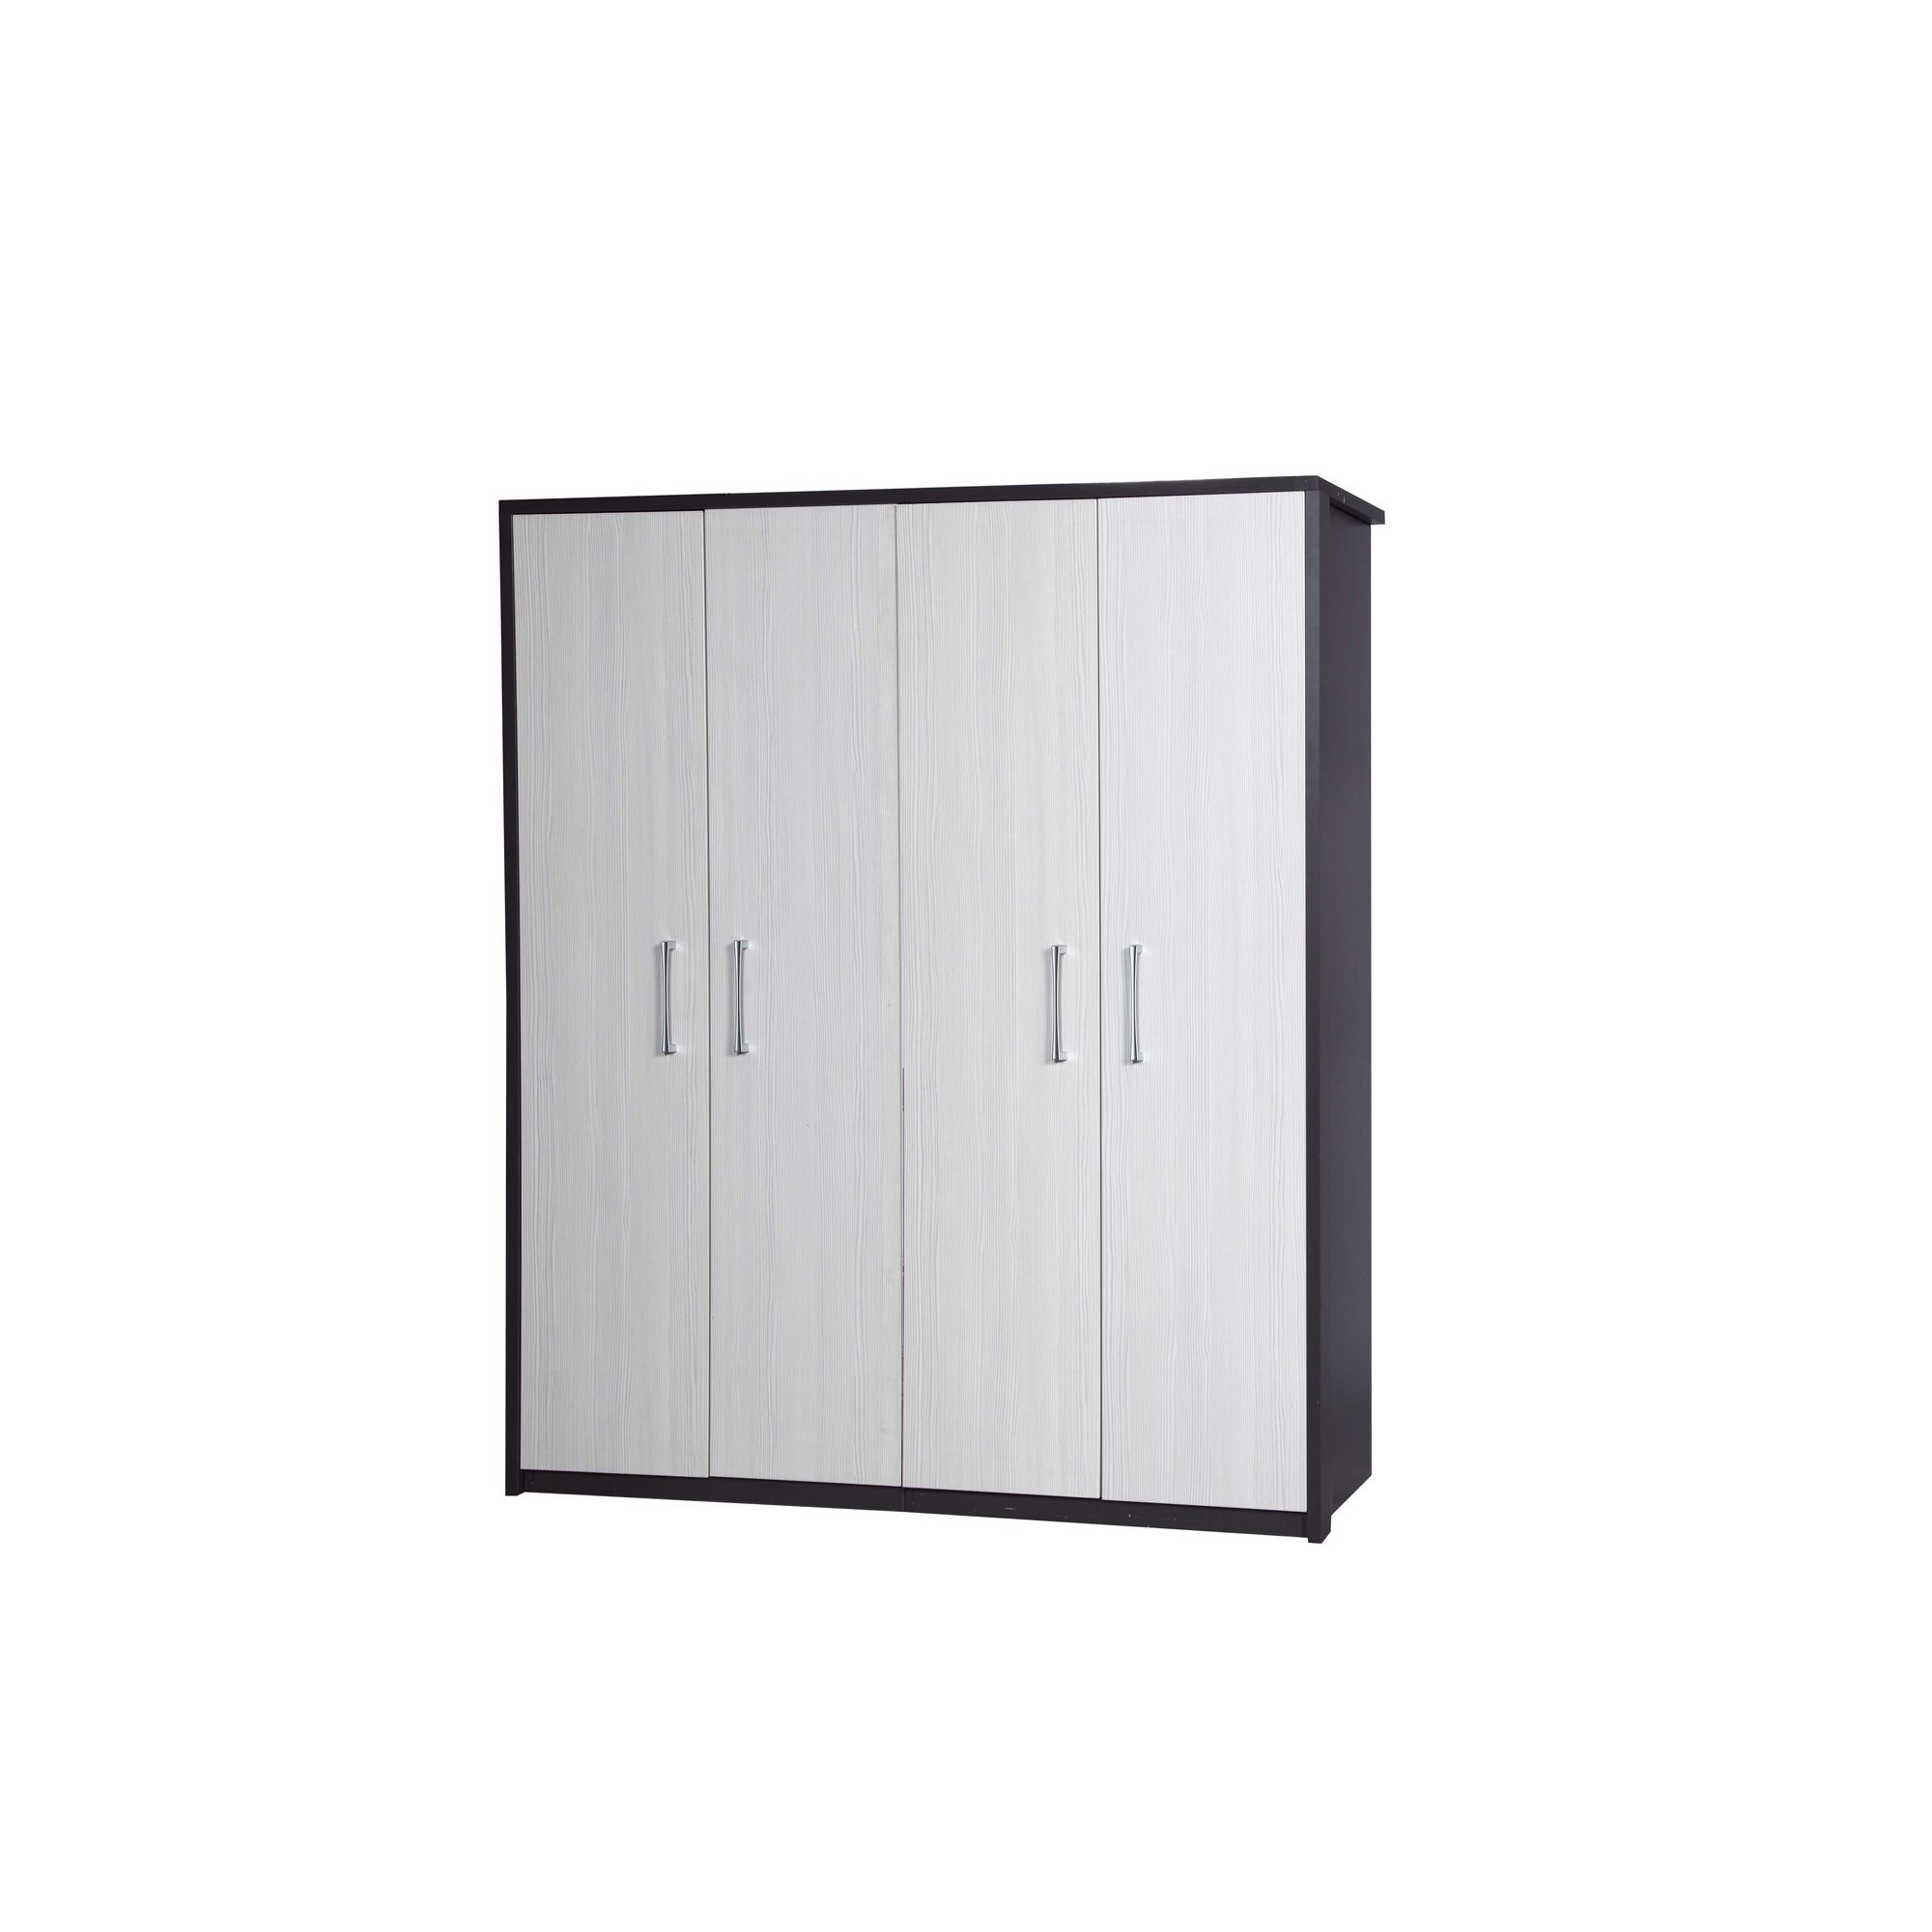 Alto Furniture Avola 4 Door Wardrobe - Grey Carcass With White Avola at Tescos Direct